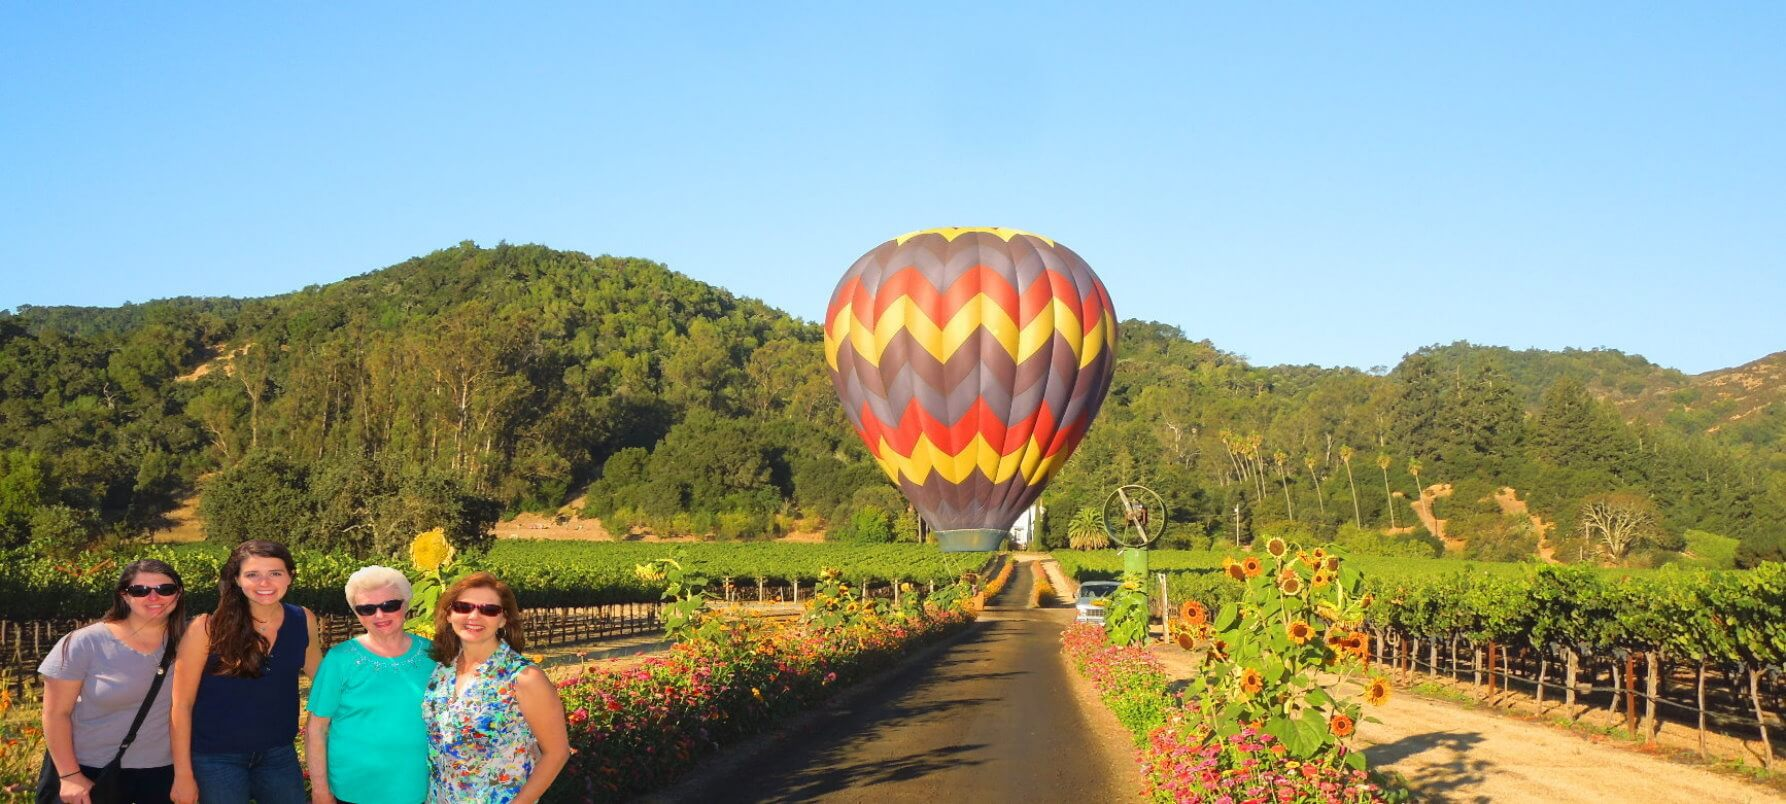 napa-valley-hot-_air-balloon-rides-alcatraz-tours(1)